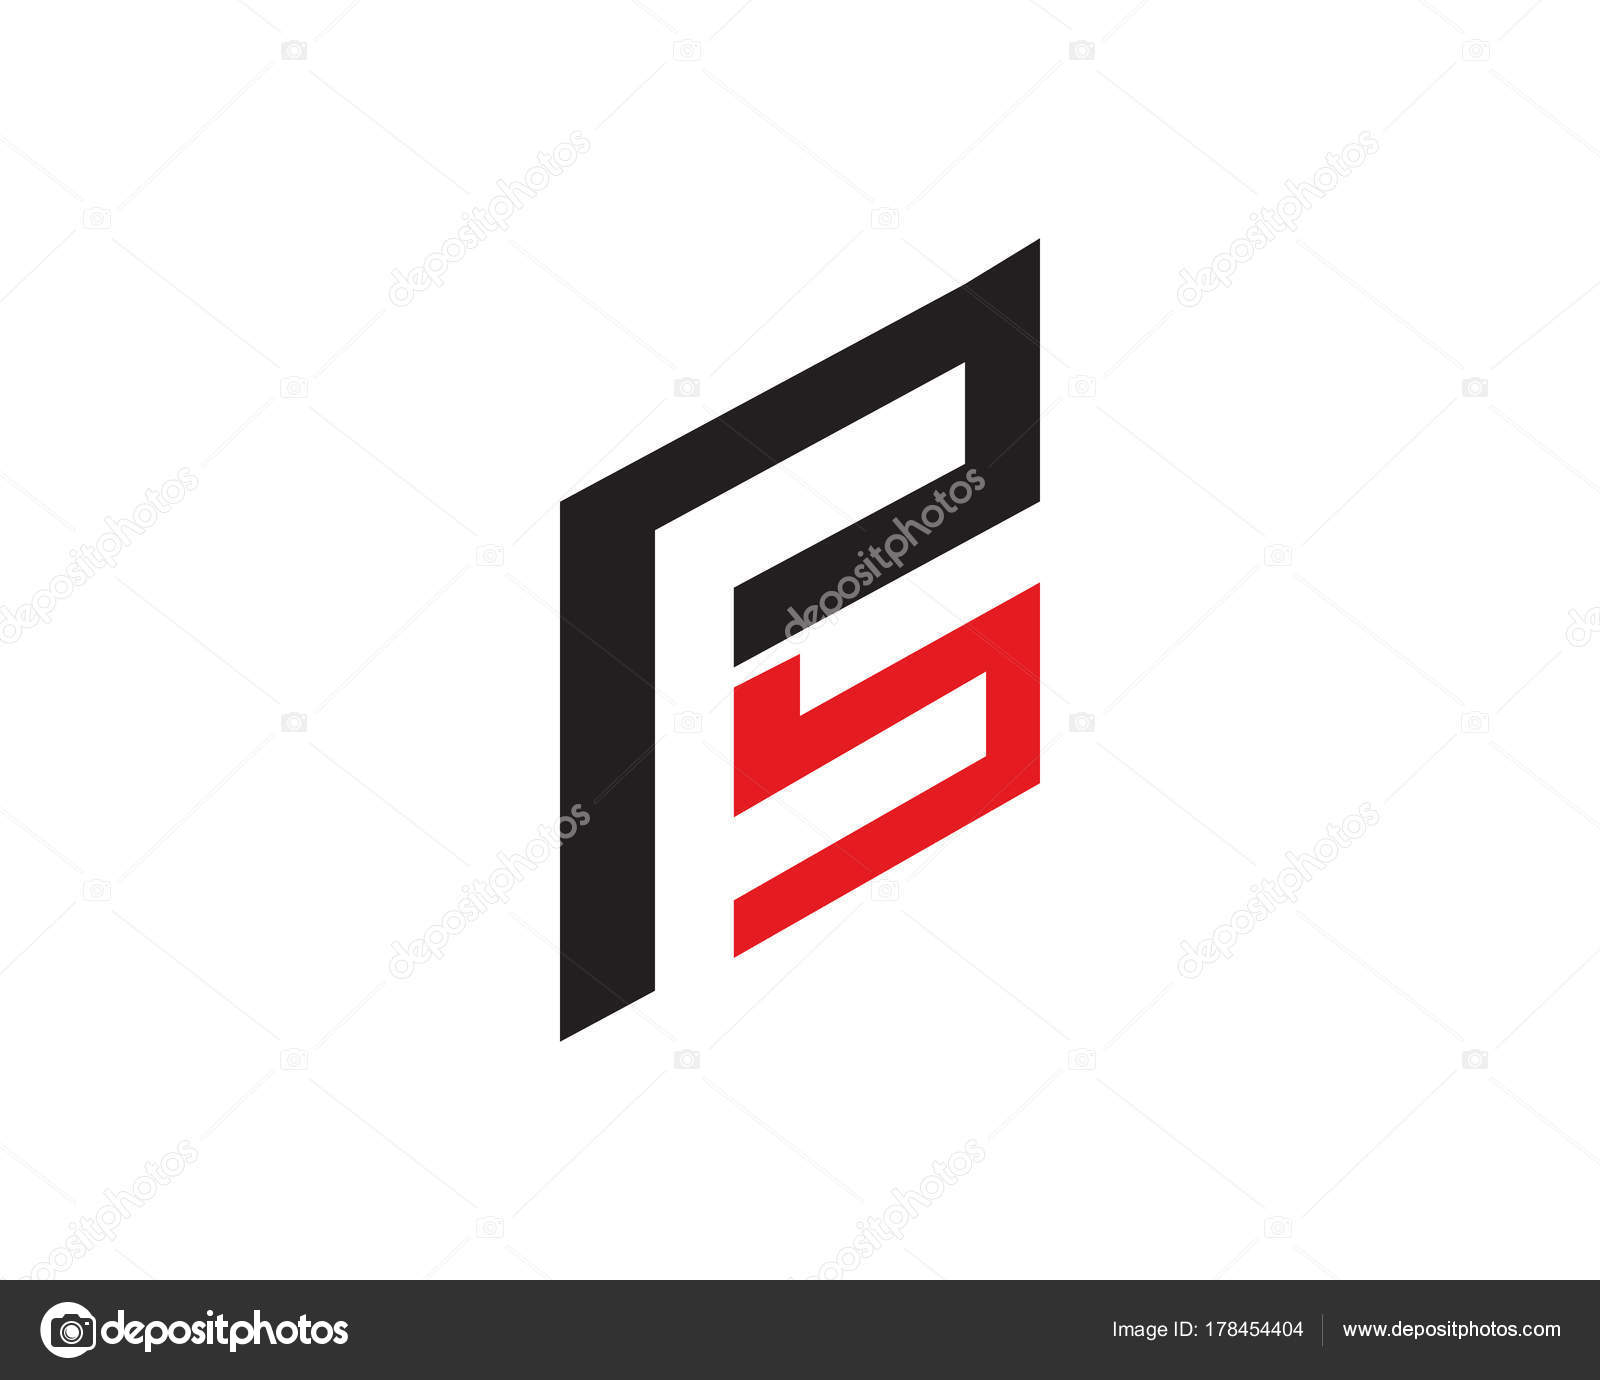 Ps letter logo stock vector meisusenogmail 178454404 ps letter logo stock vector thecheapjerseys Images